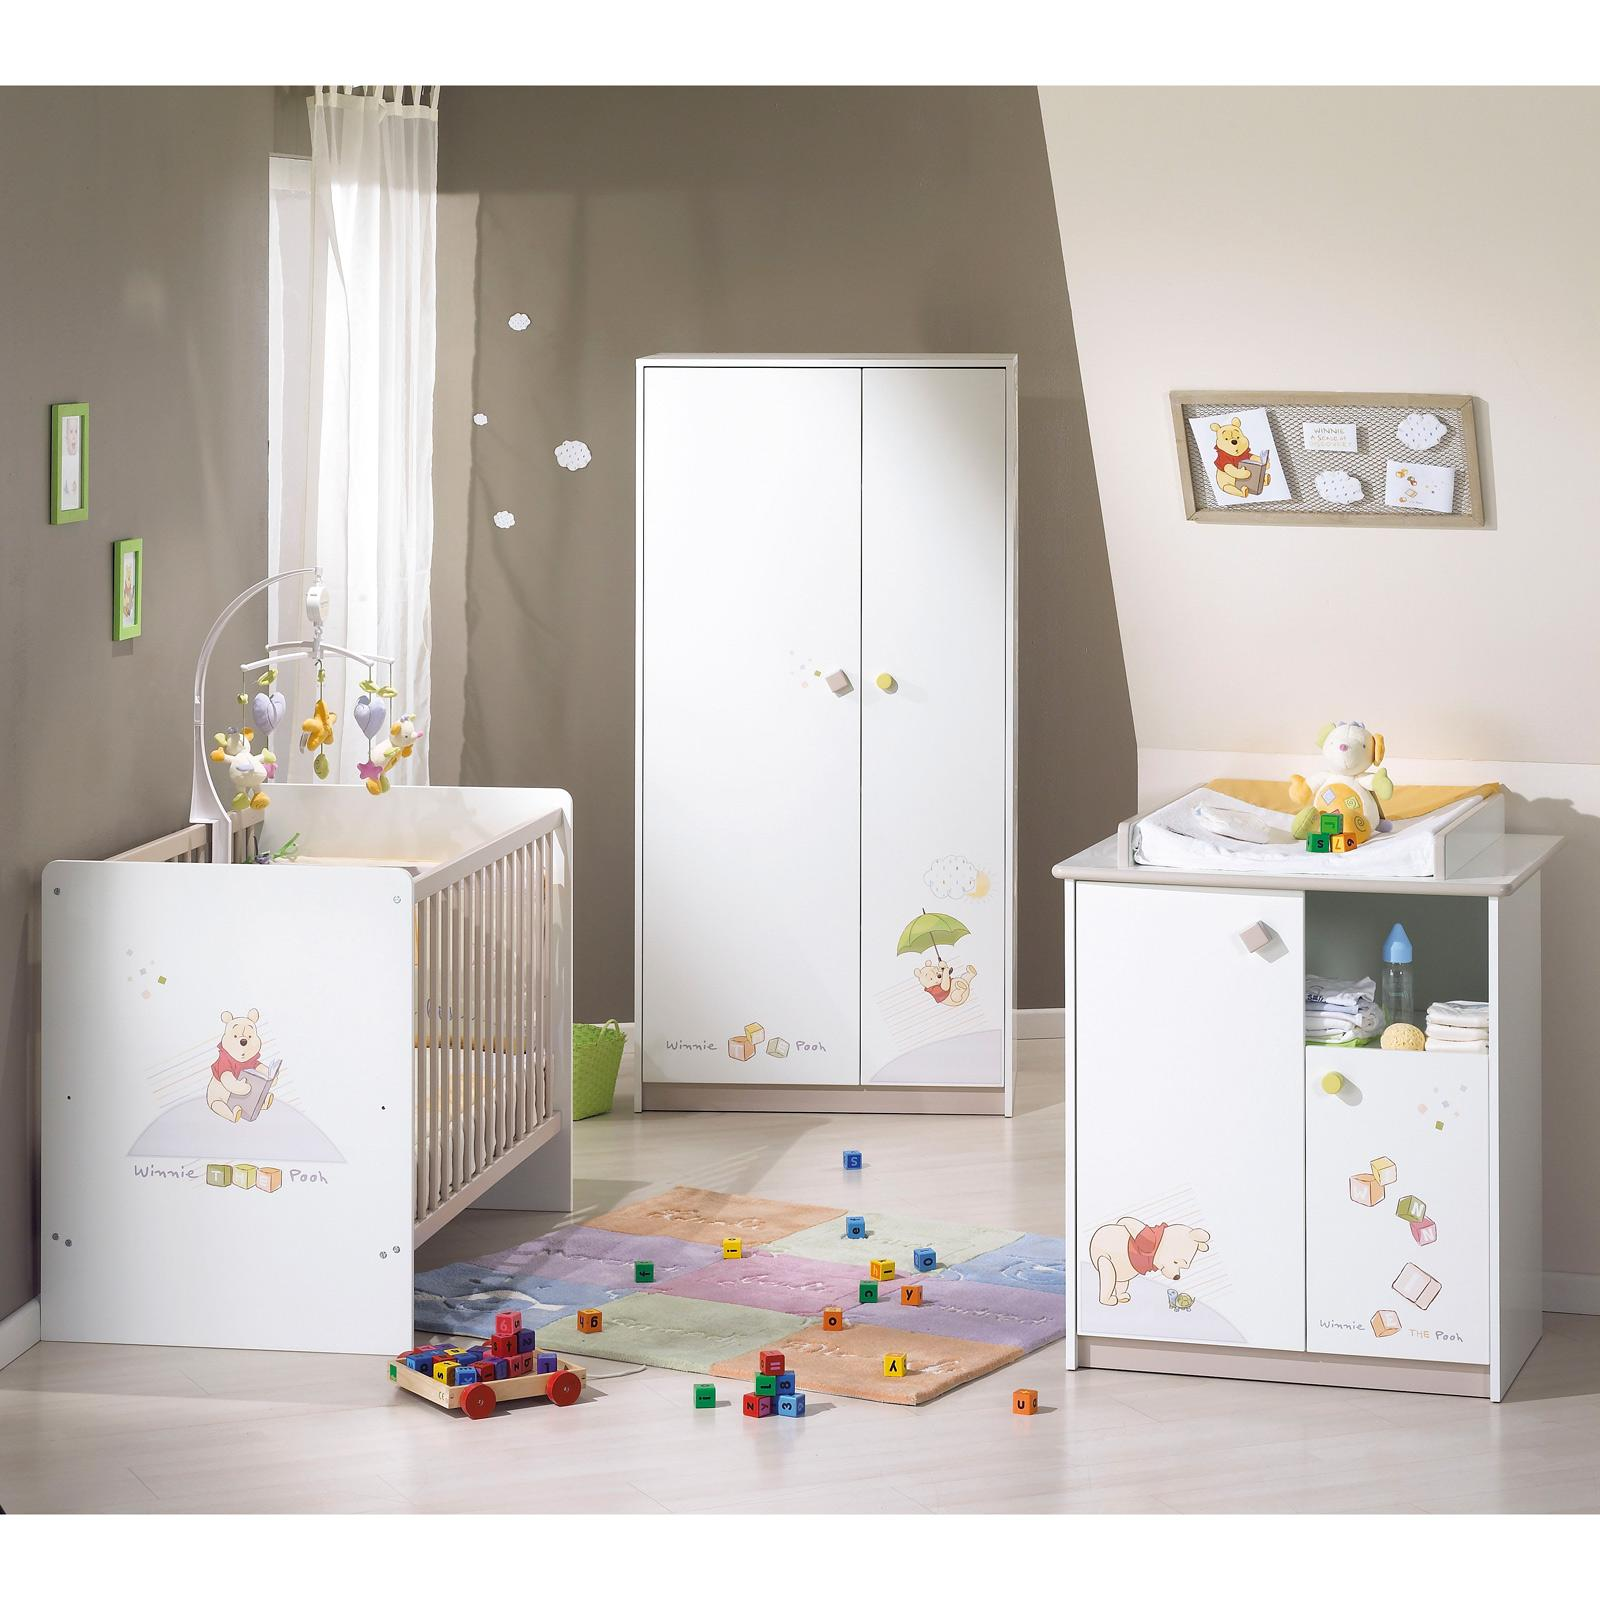 Decoration chambre winnie l ourson pas cher for Chambre enfant deco